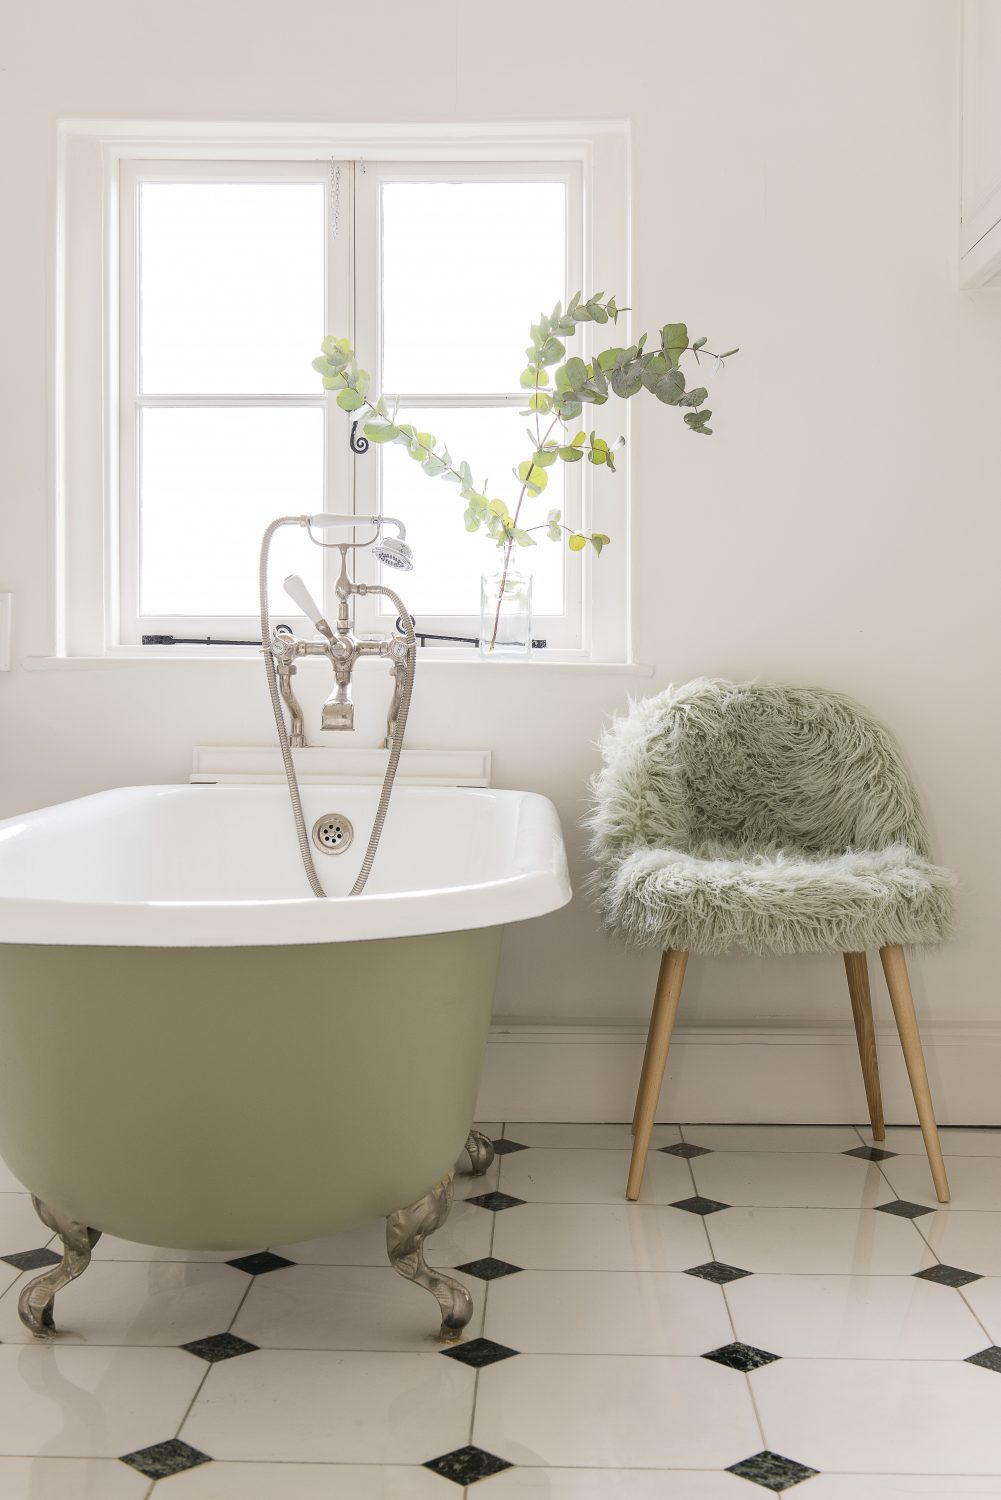 The adjoining bathroom continues a light and fun attitude with a green bathtub